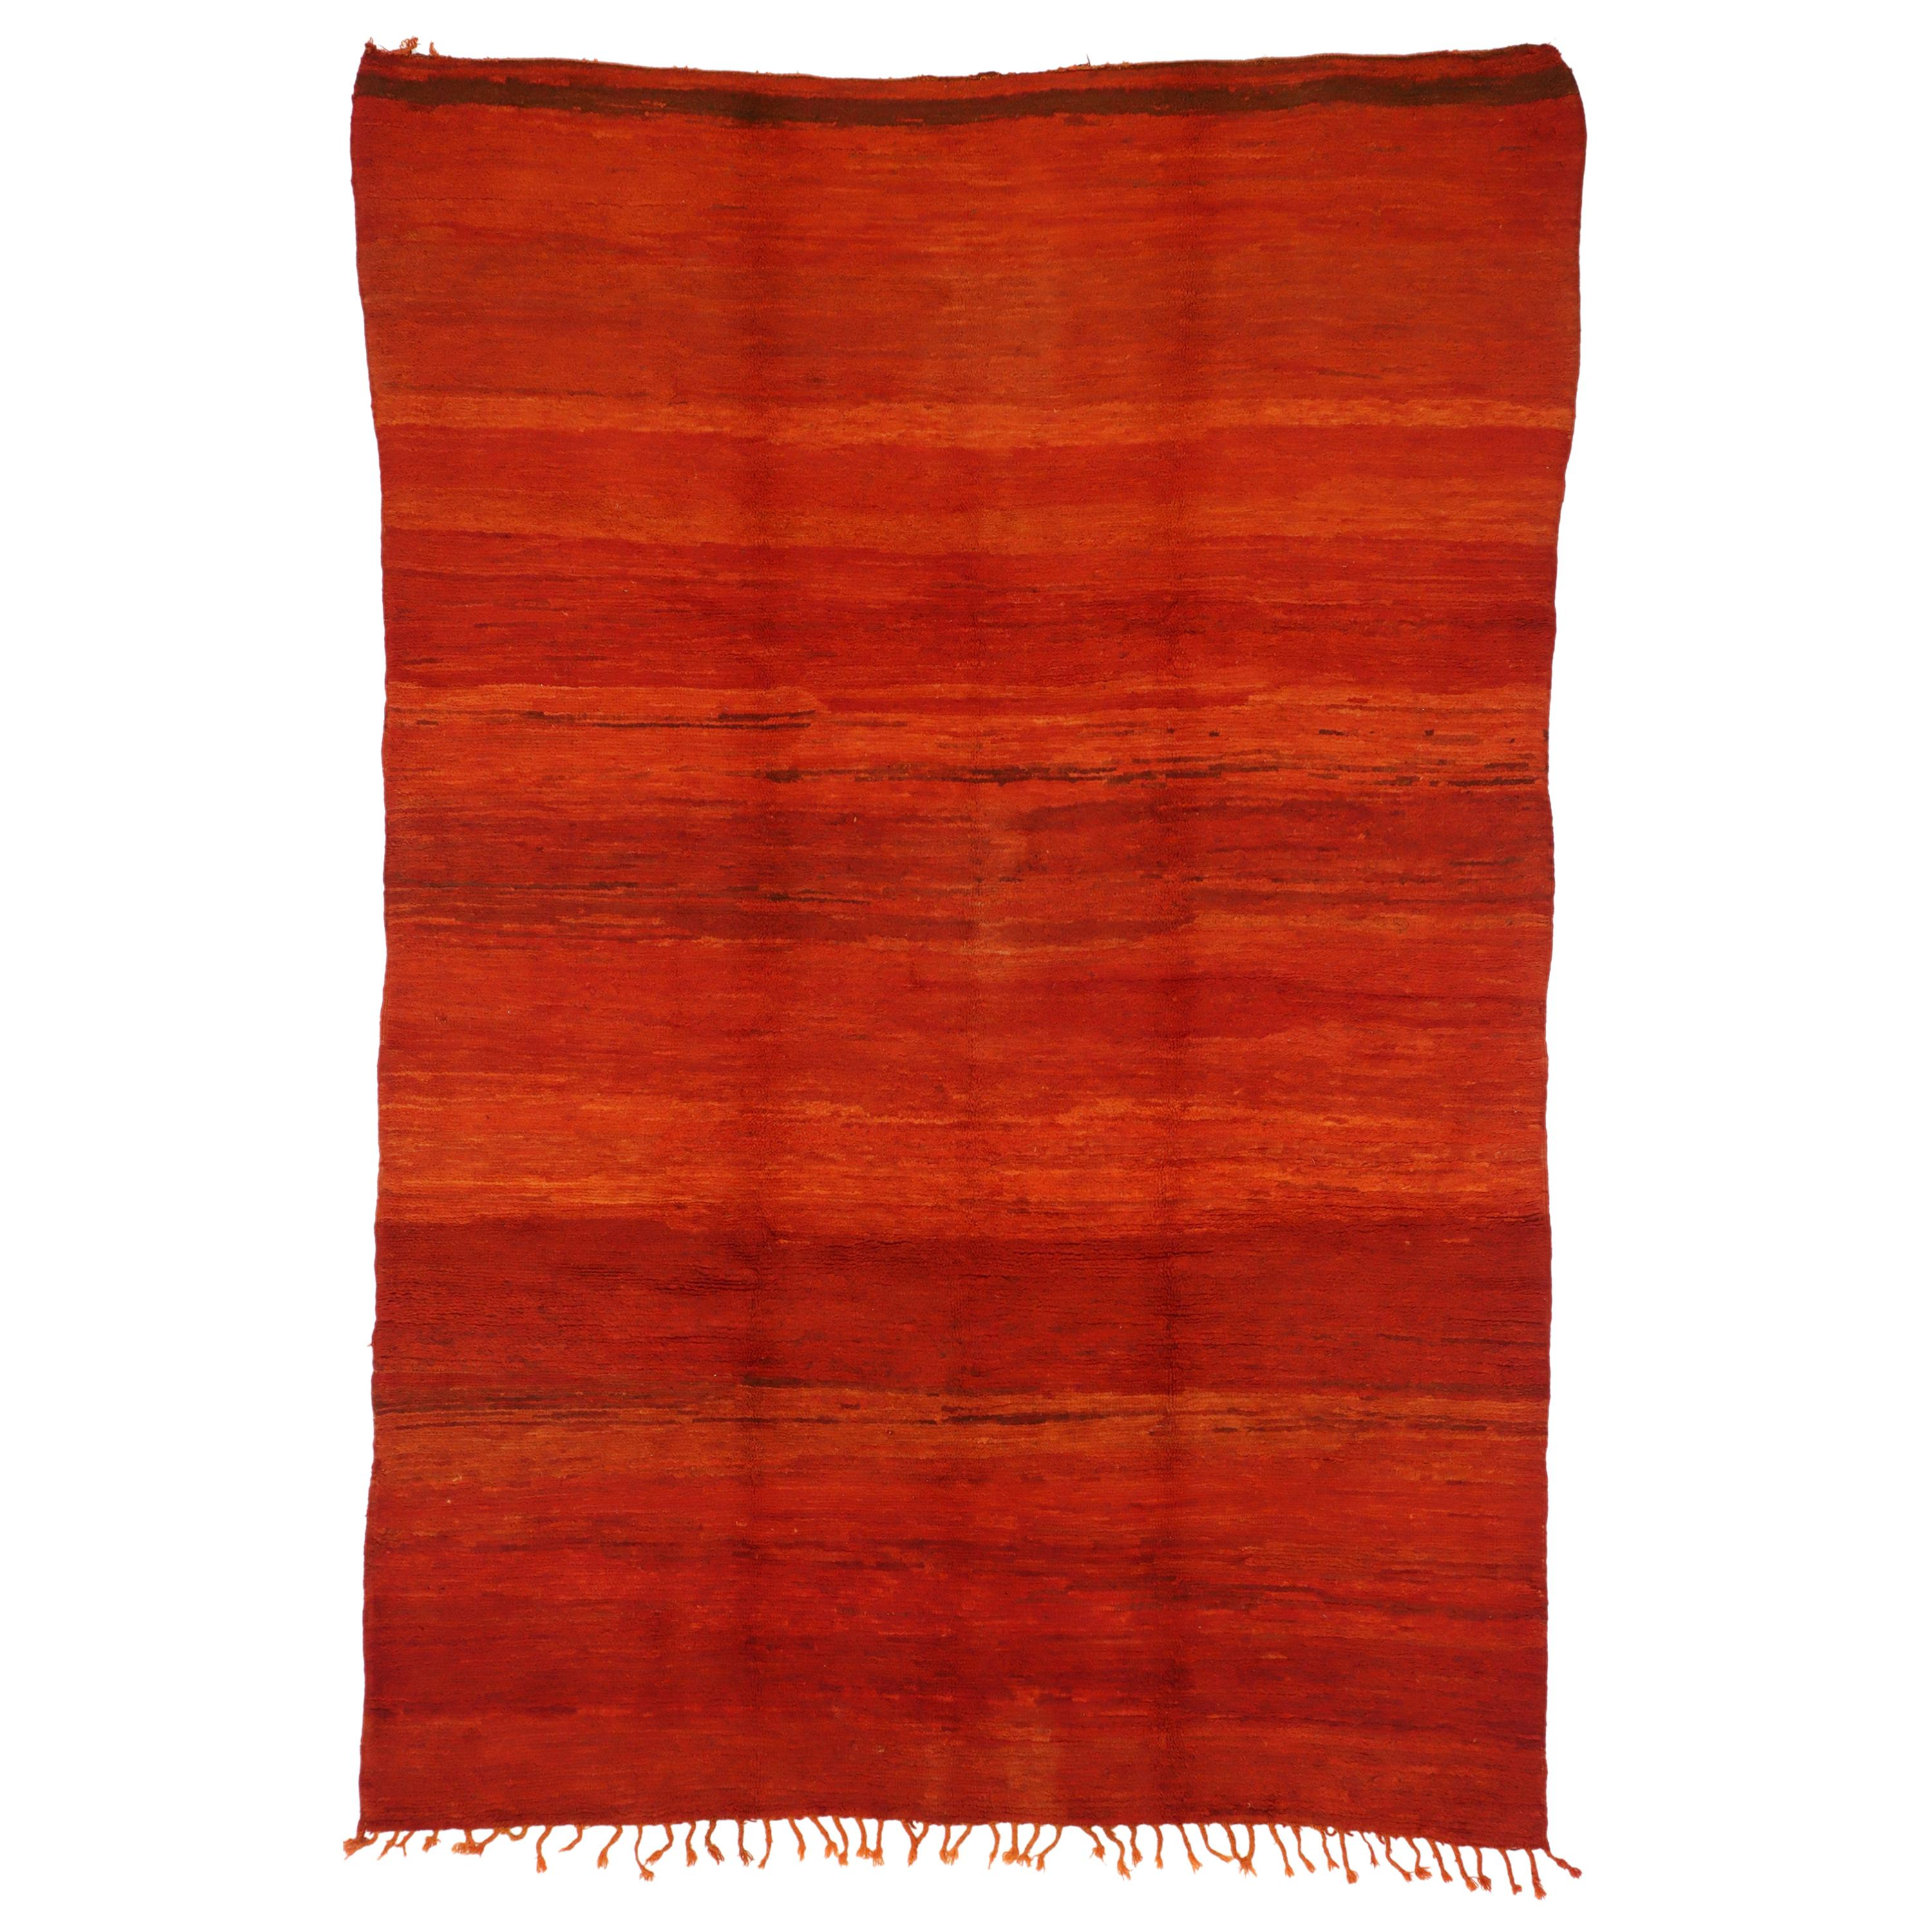 Vintage Red Beni Mrirt Moroccan Rug with Modern Style Inspired by Mark Rothko